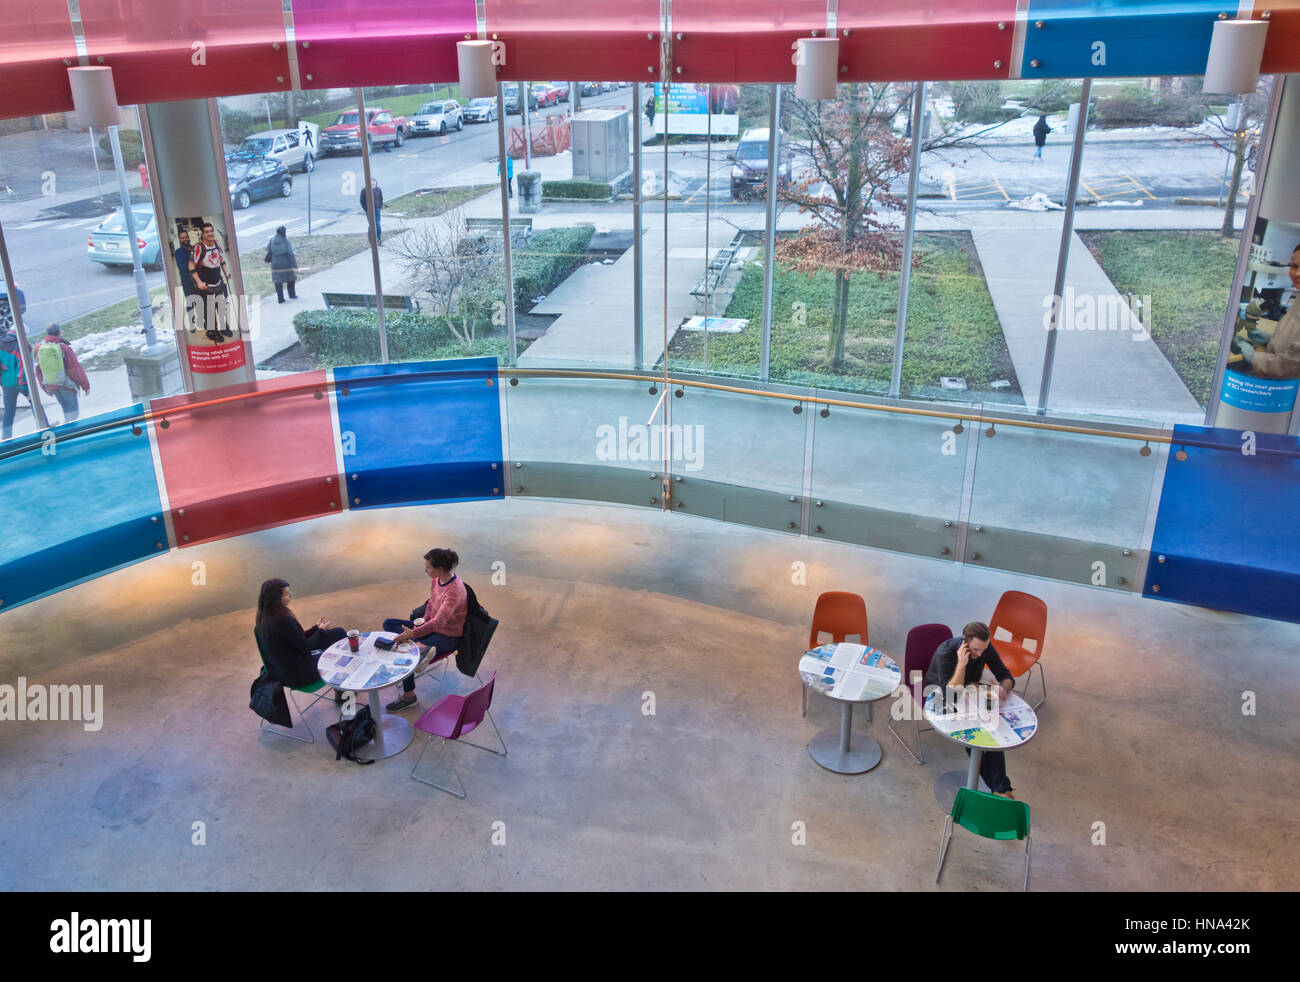 People sitting at small round tables in the atrium of the Blusson spinal cord centre in Vancouver - Stock Image